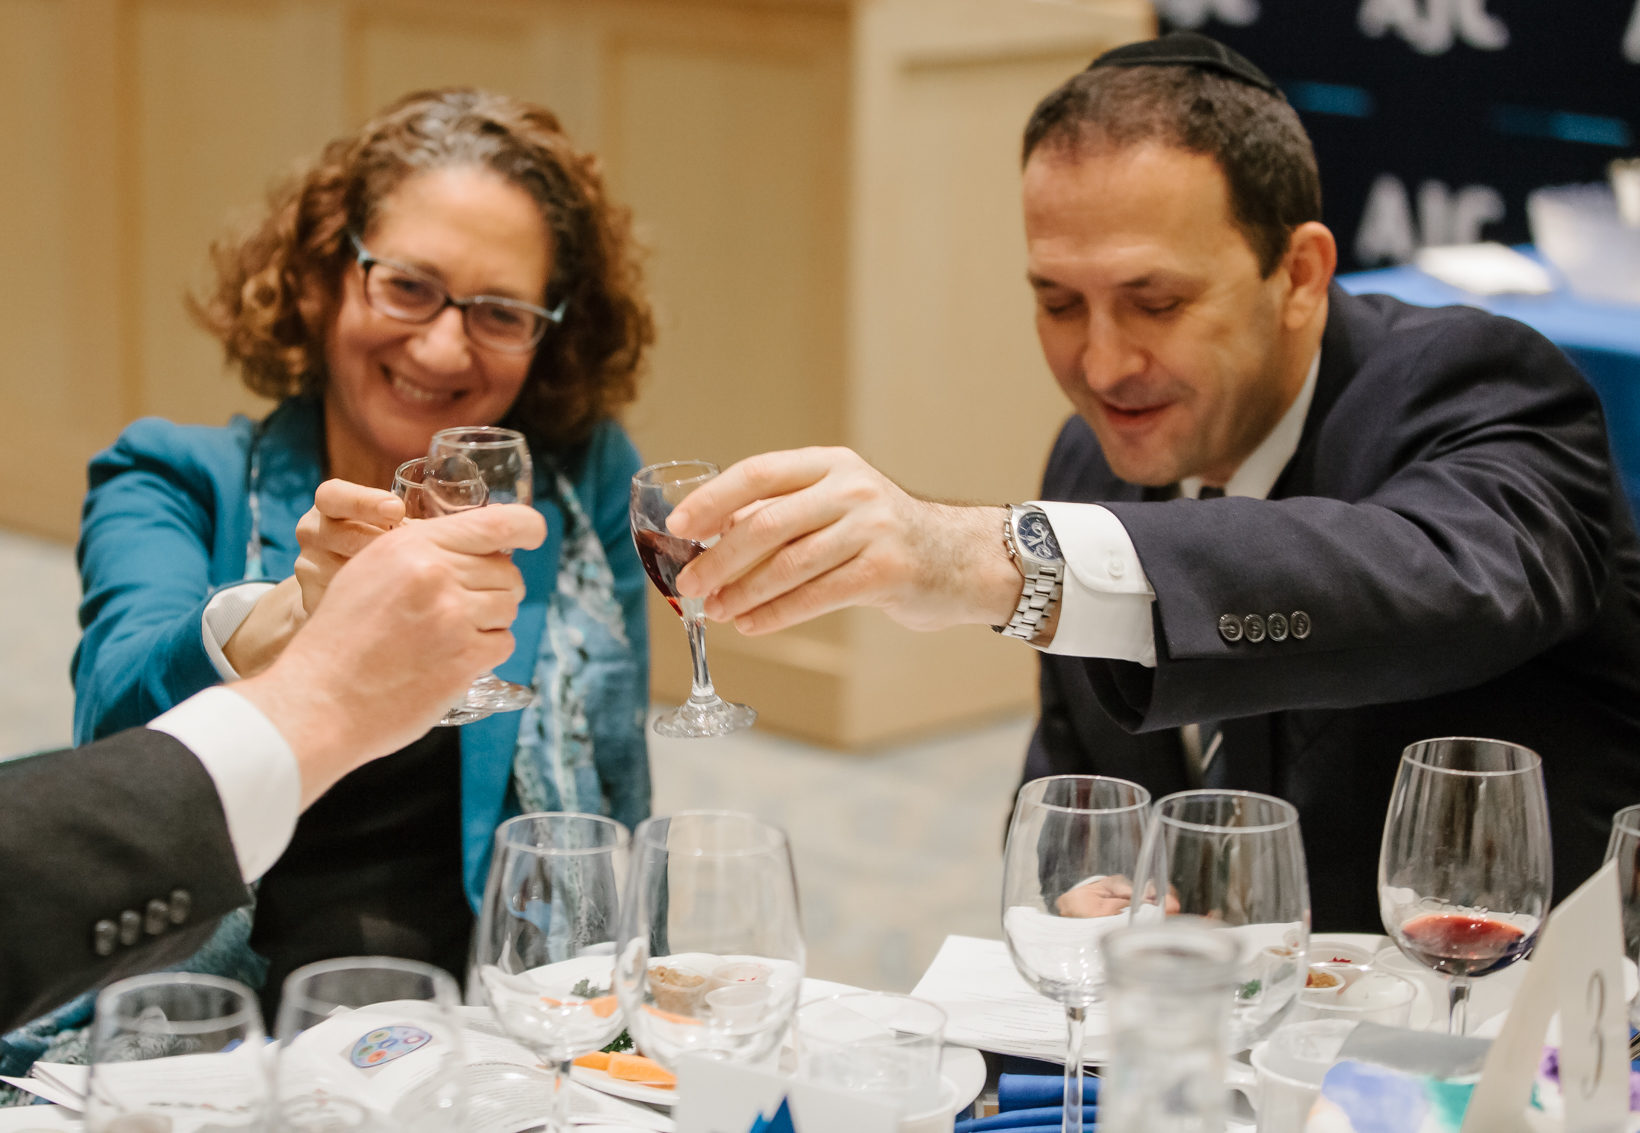 Rabbi Serena Eisenberg and Israeli Consul General Shlomi Kofman at the AJC Diplomats Seder at Congregation Sherith Israel in San Francisco, March 22, 2018 (Photo/AJC-Mariah Tiffany)